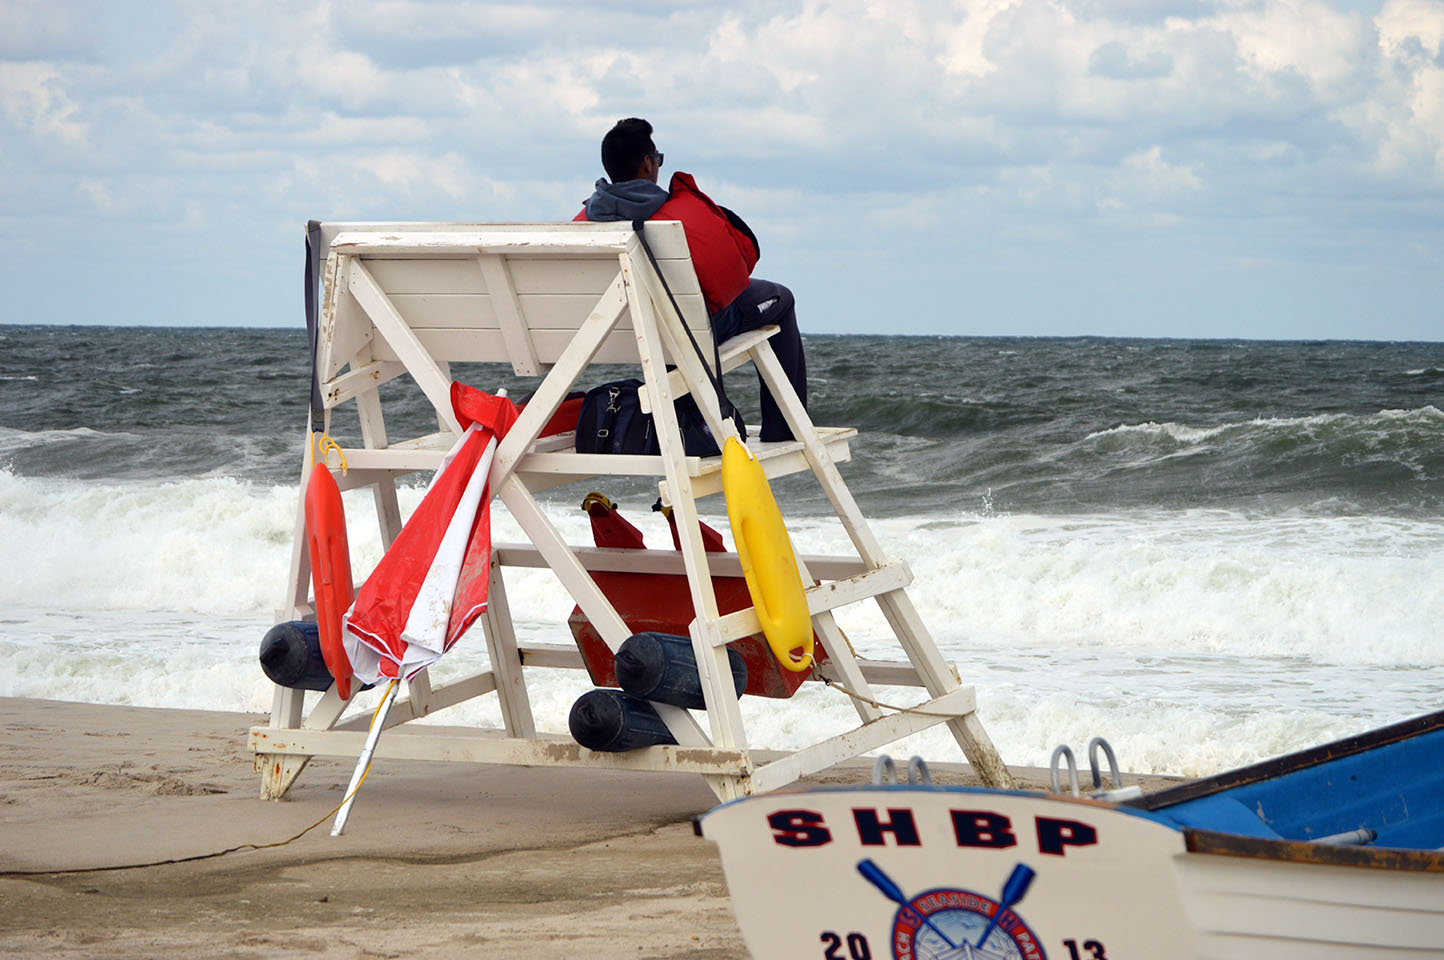 Rough surf closes beaches in Seaside Heights, N.J., Aug. 28, 2017. (Photo: Daniel Nee)